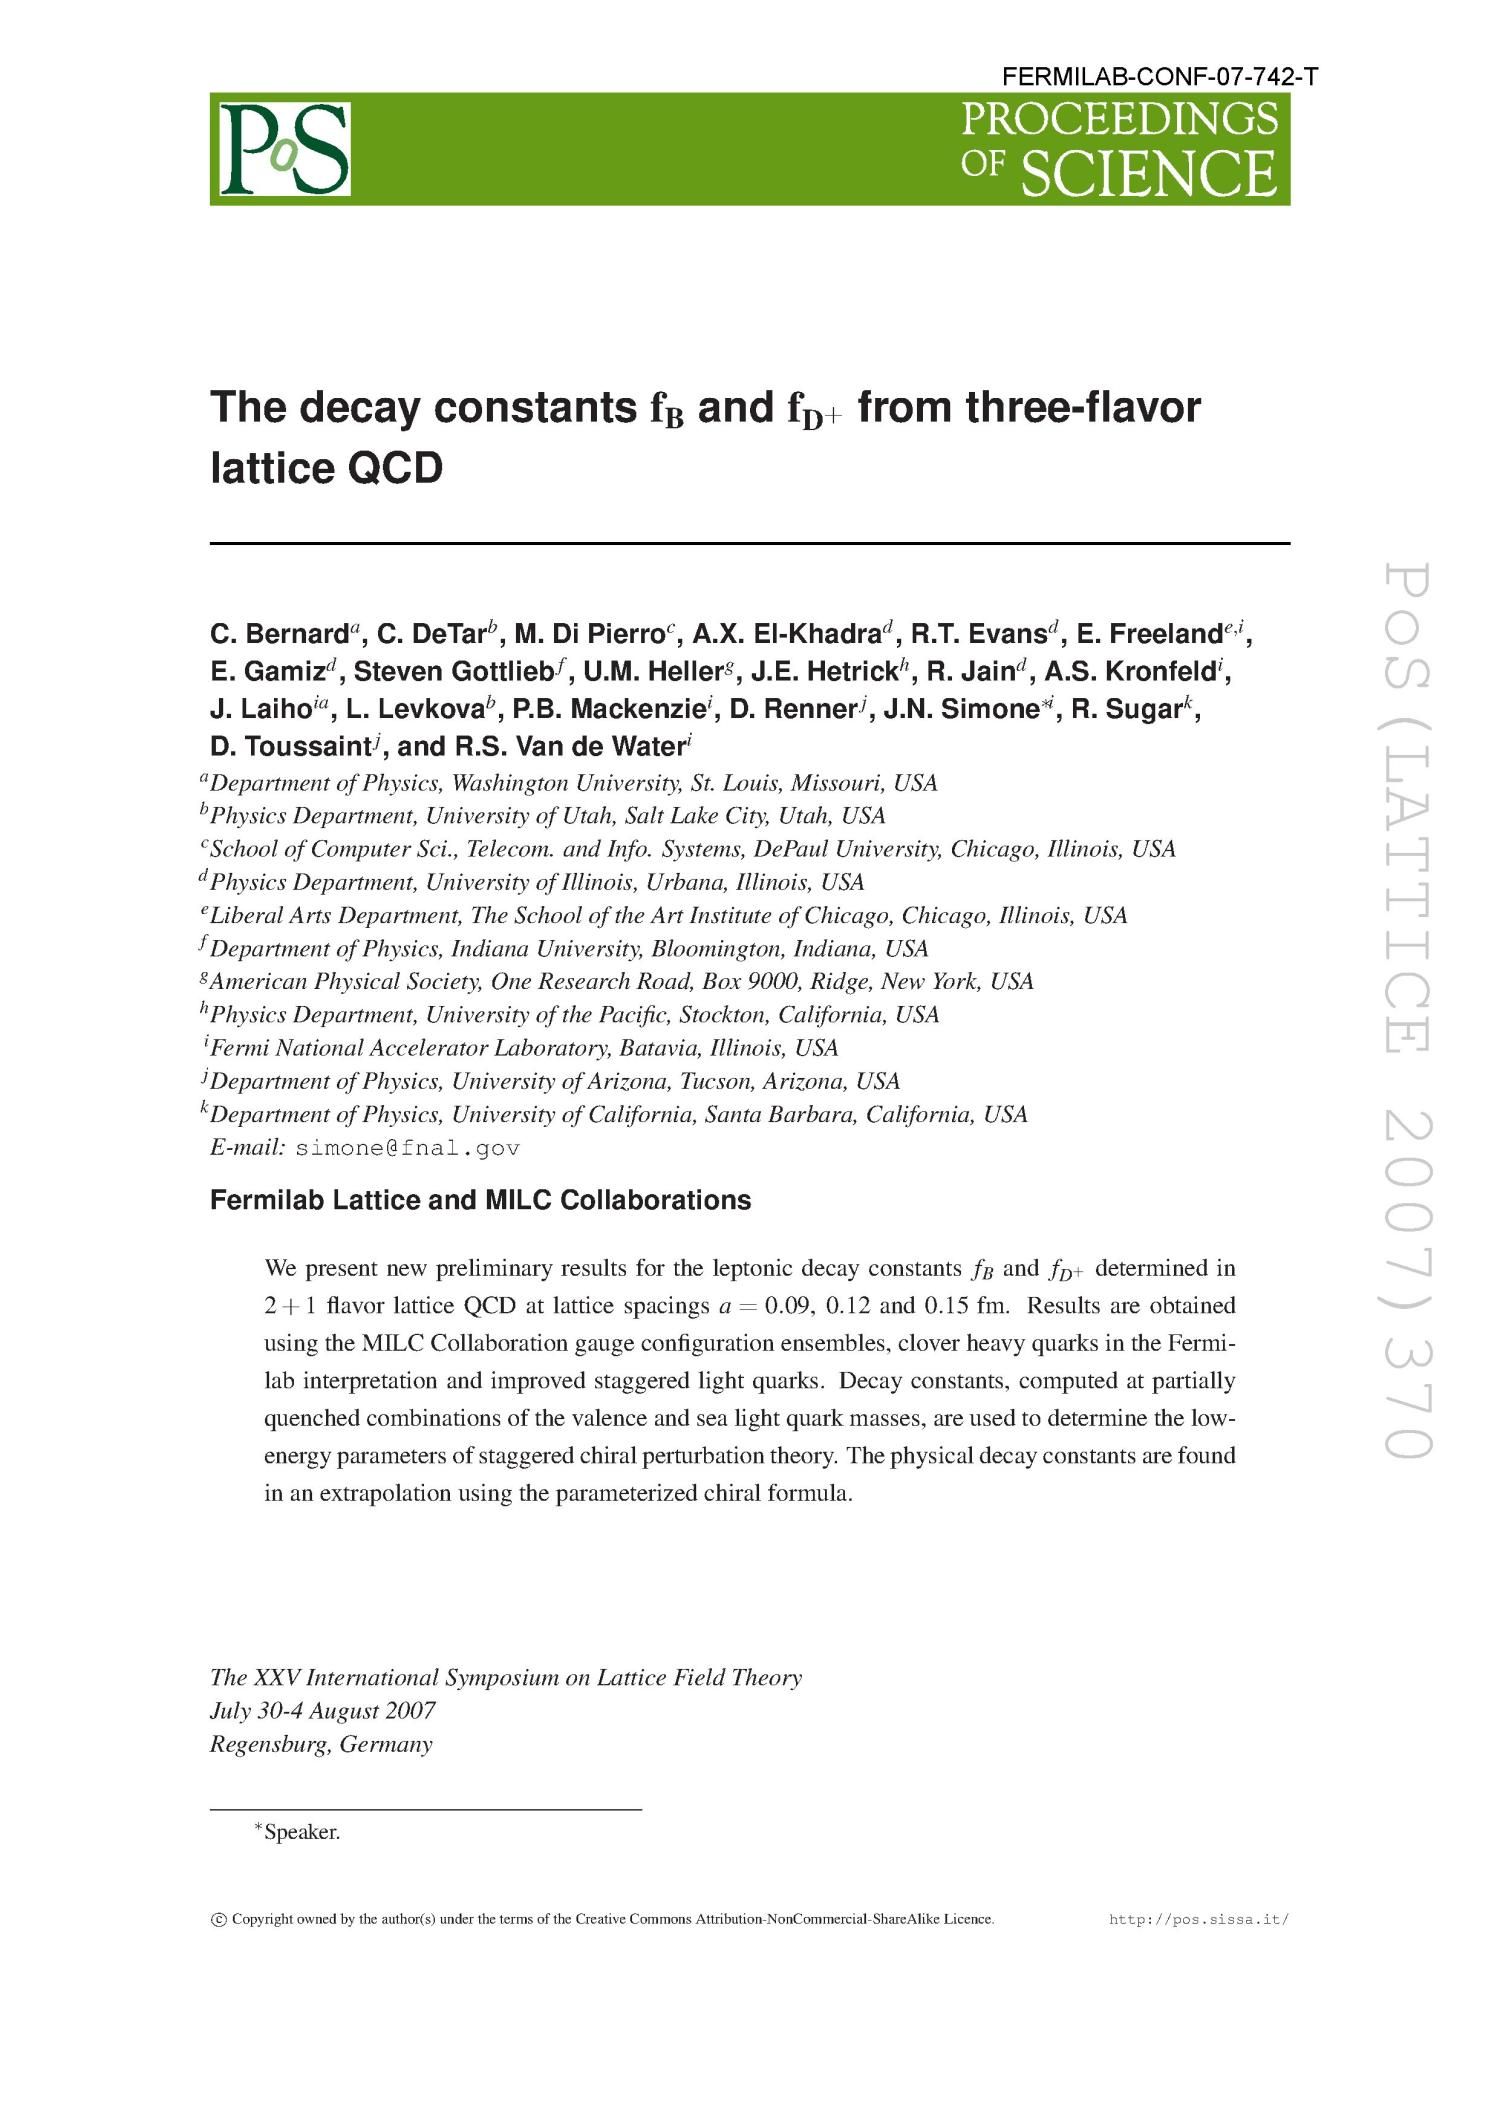 The decay constants f(B) and f(D+) from three-flavor lattice QCD                                                                                                      [Sequence #]: 1 of 7